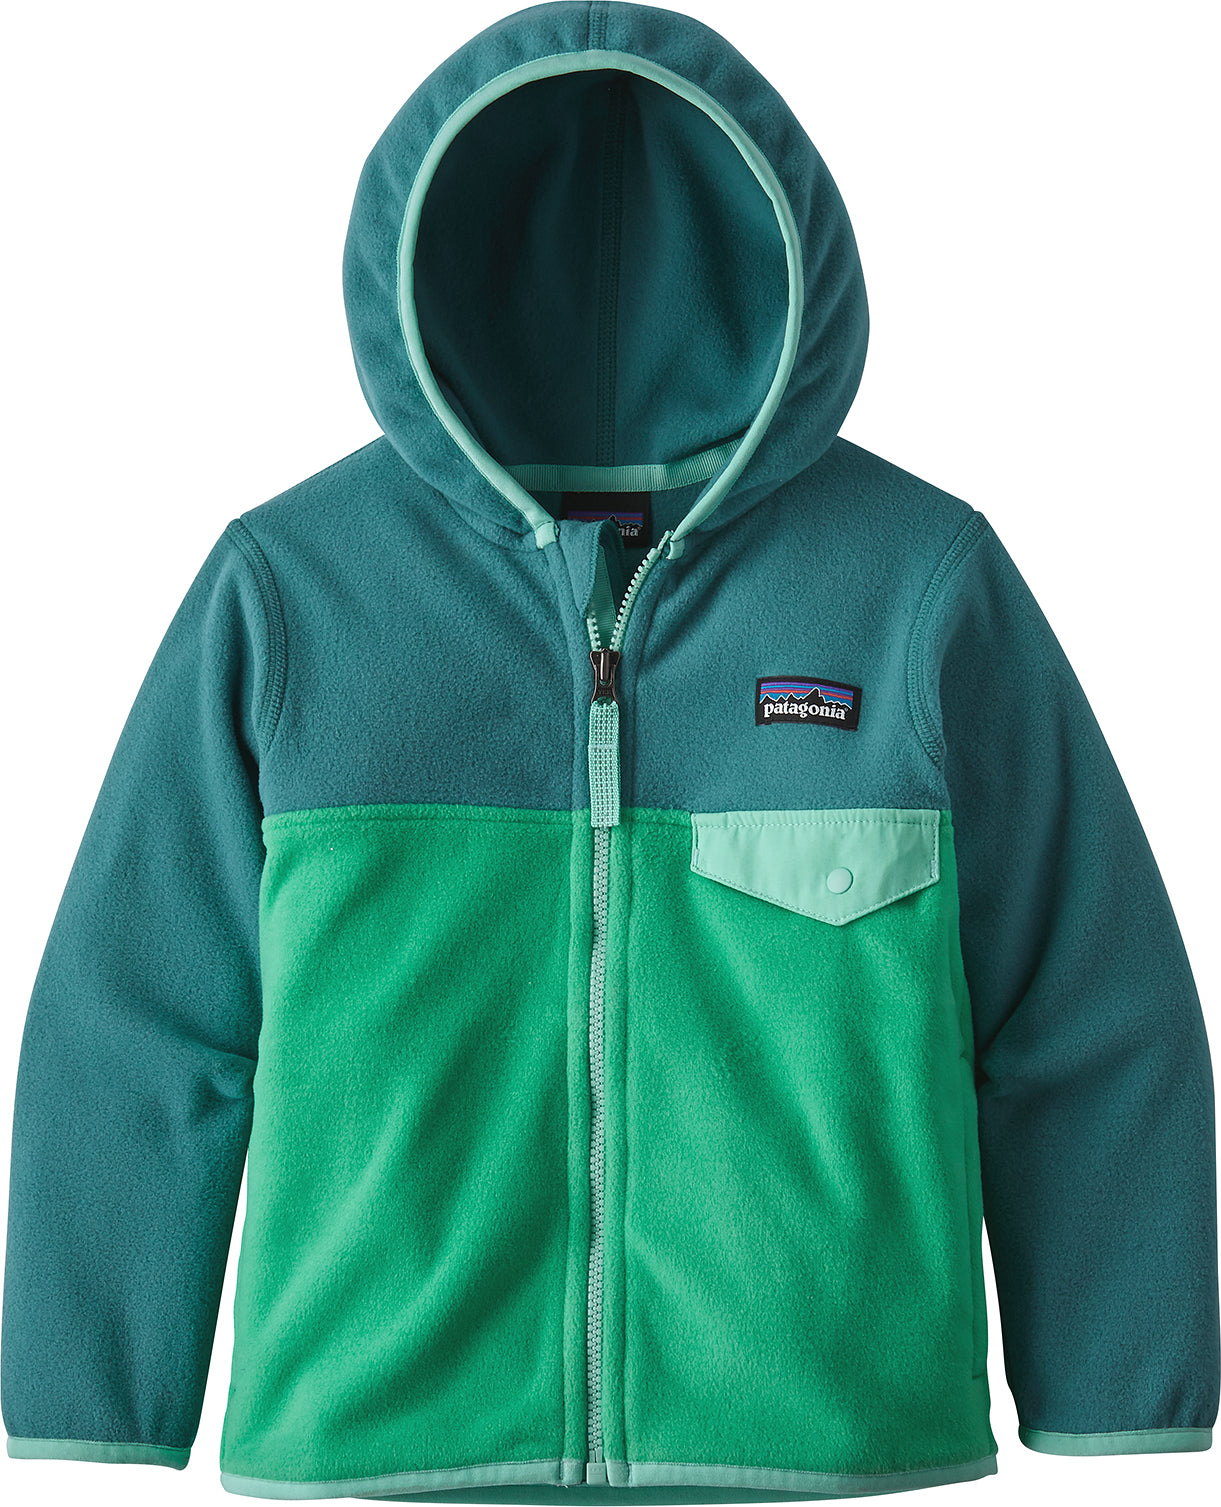 f874d07e2 Patagonia Micro D Snap-t Jacket - Baby's | Altitude Sports